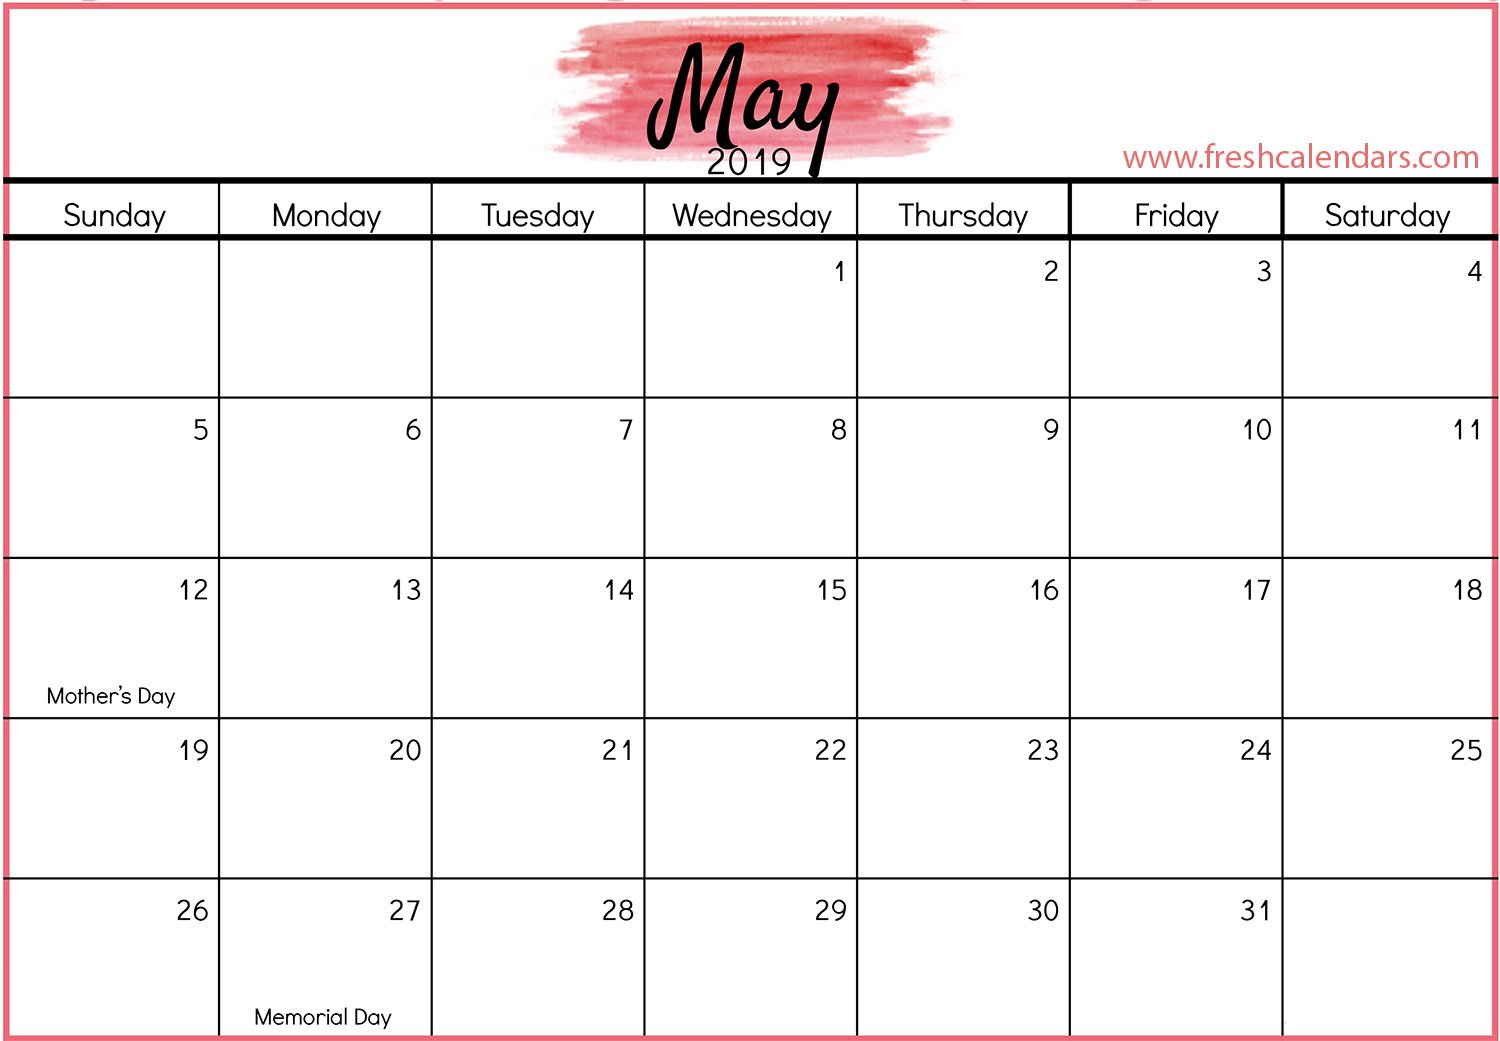 Printable May 2019 Calendar Free (7) | Download 2019 Calendar May 7 2019 Calendar